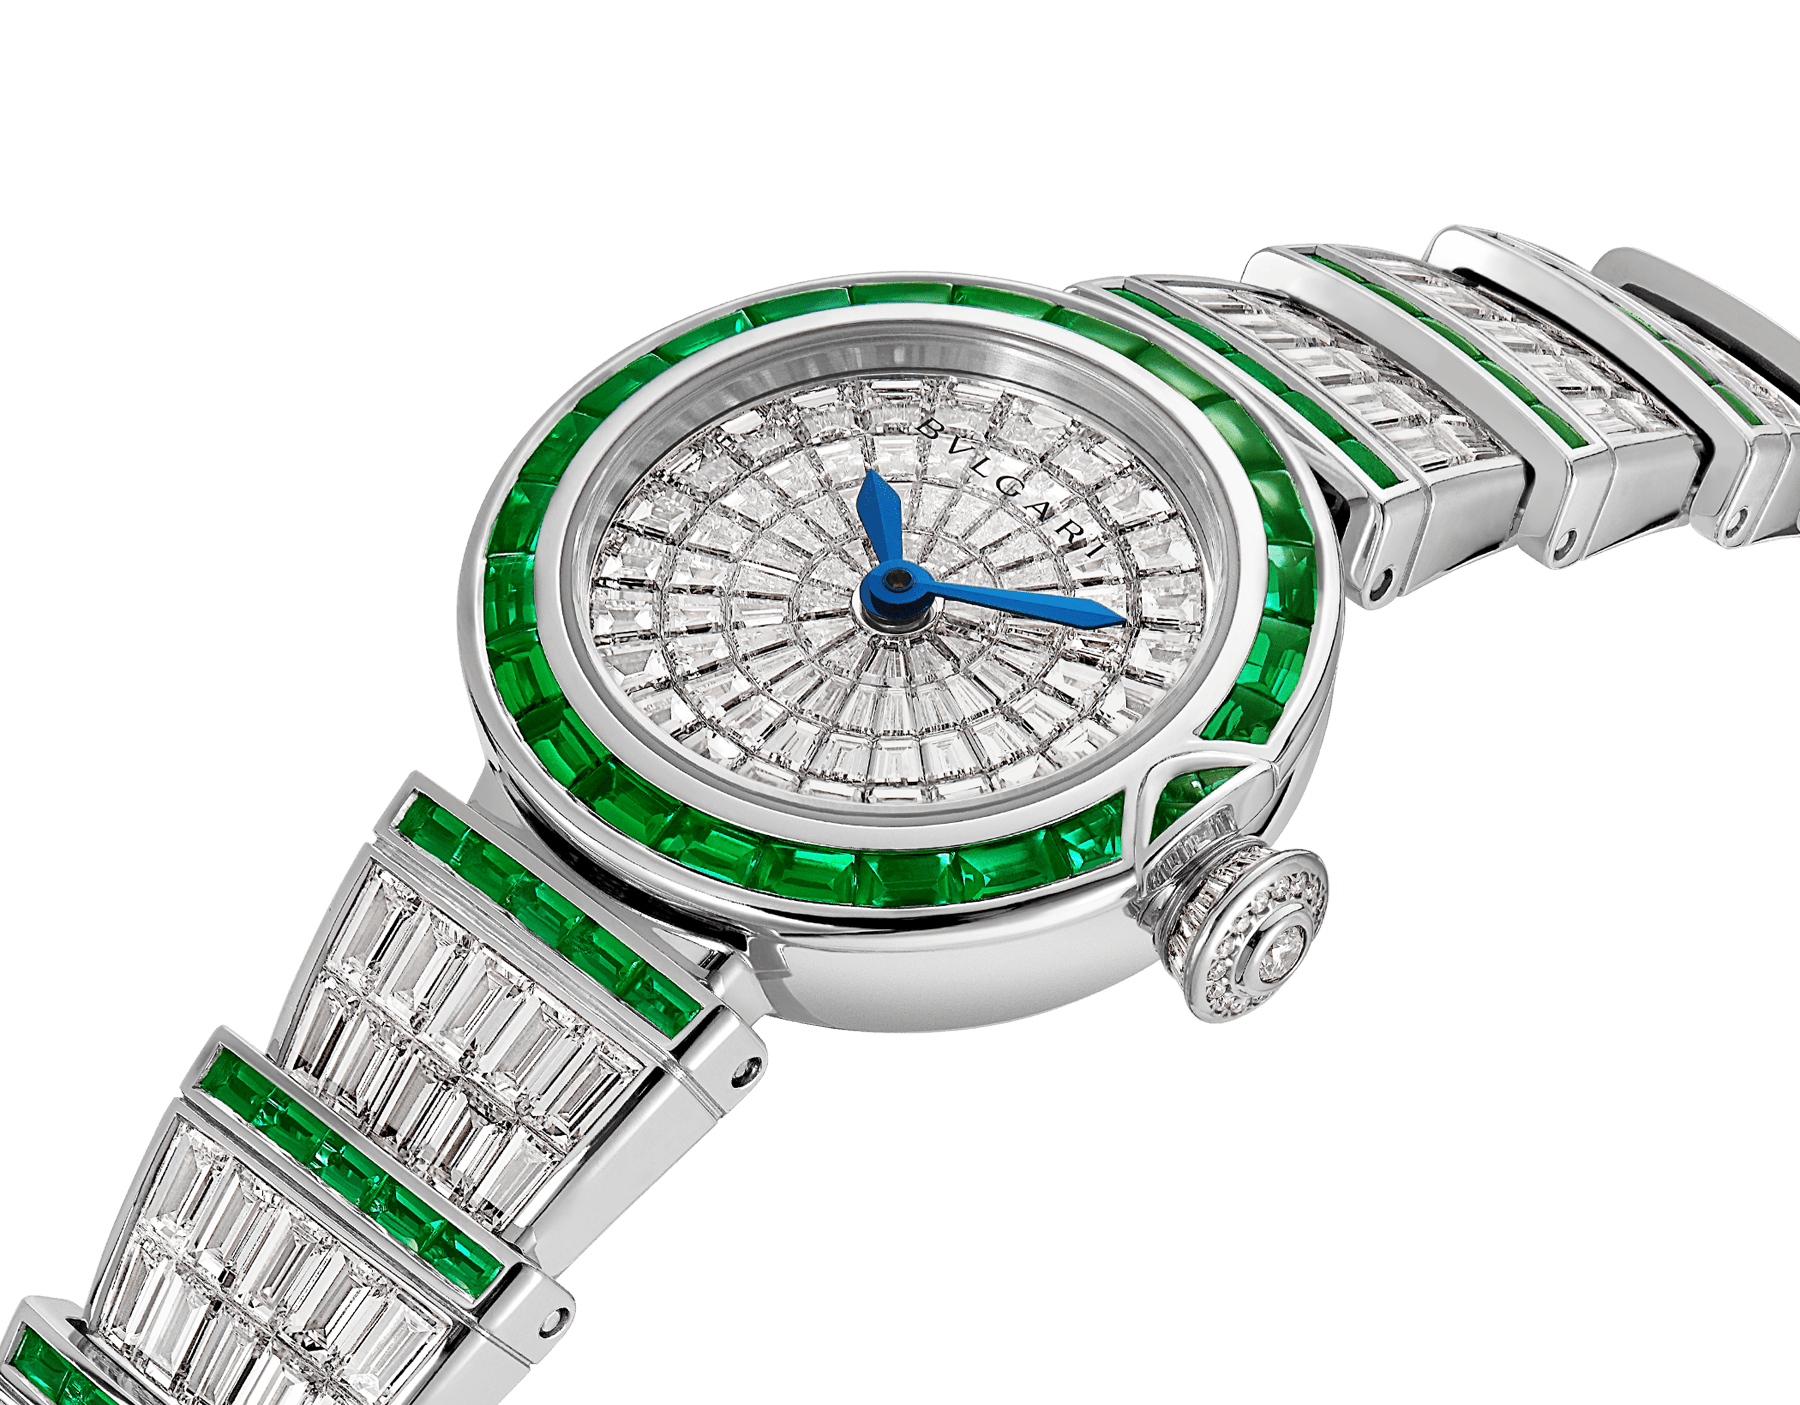 LVCEA watch in 18kt white gold case and bracelet, both set with baguette diamonds and emeralds and full diamond dial. 102466 image 2